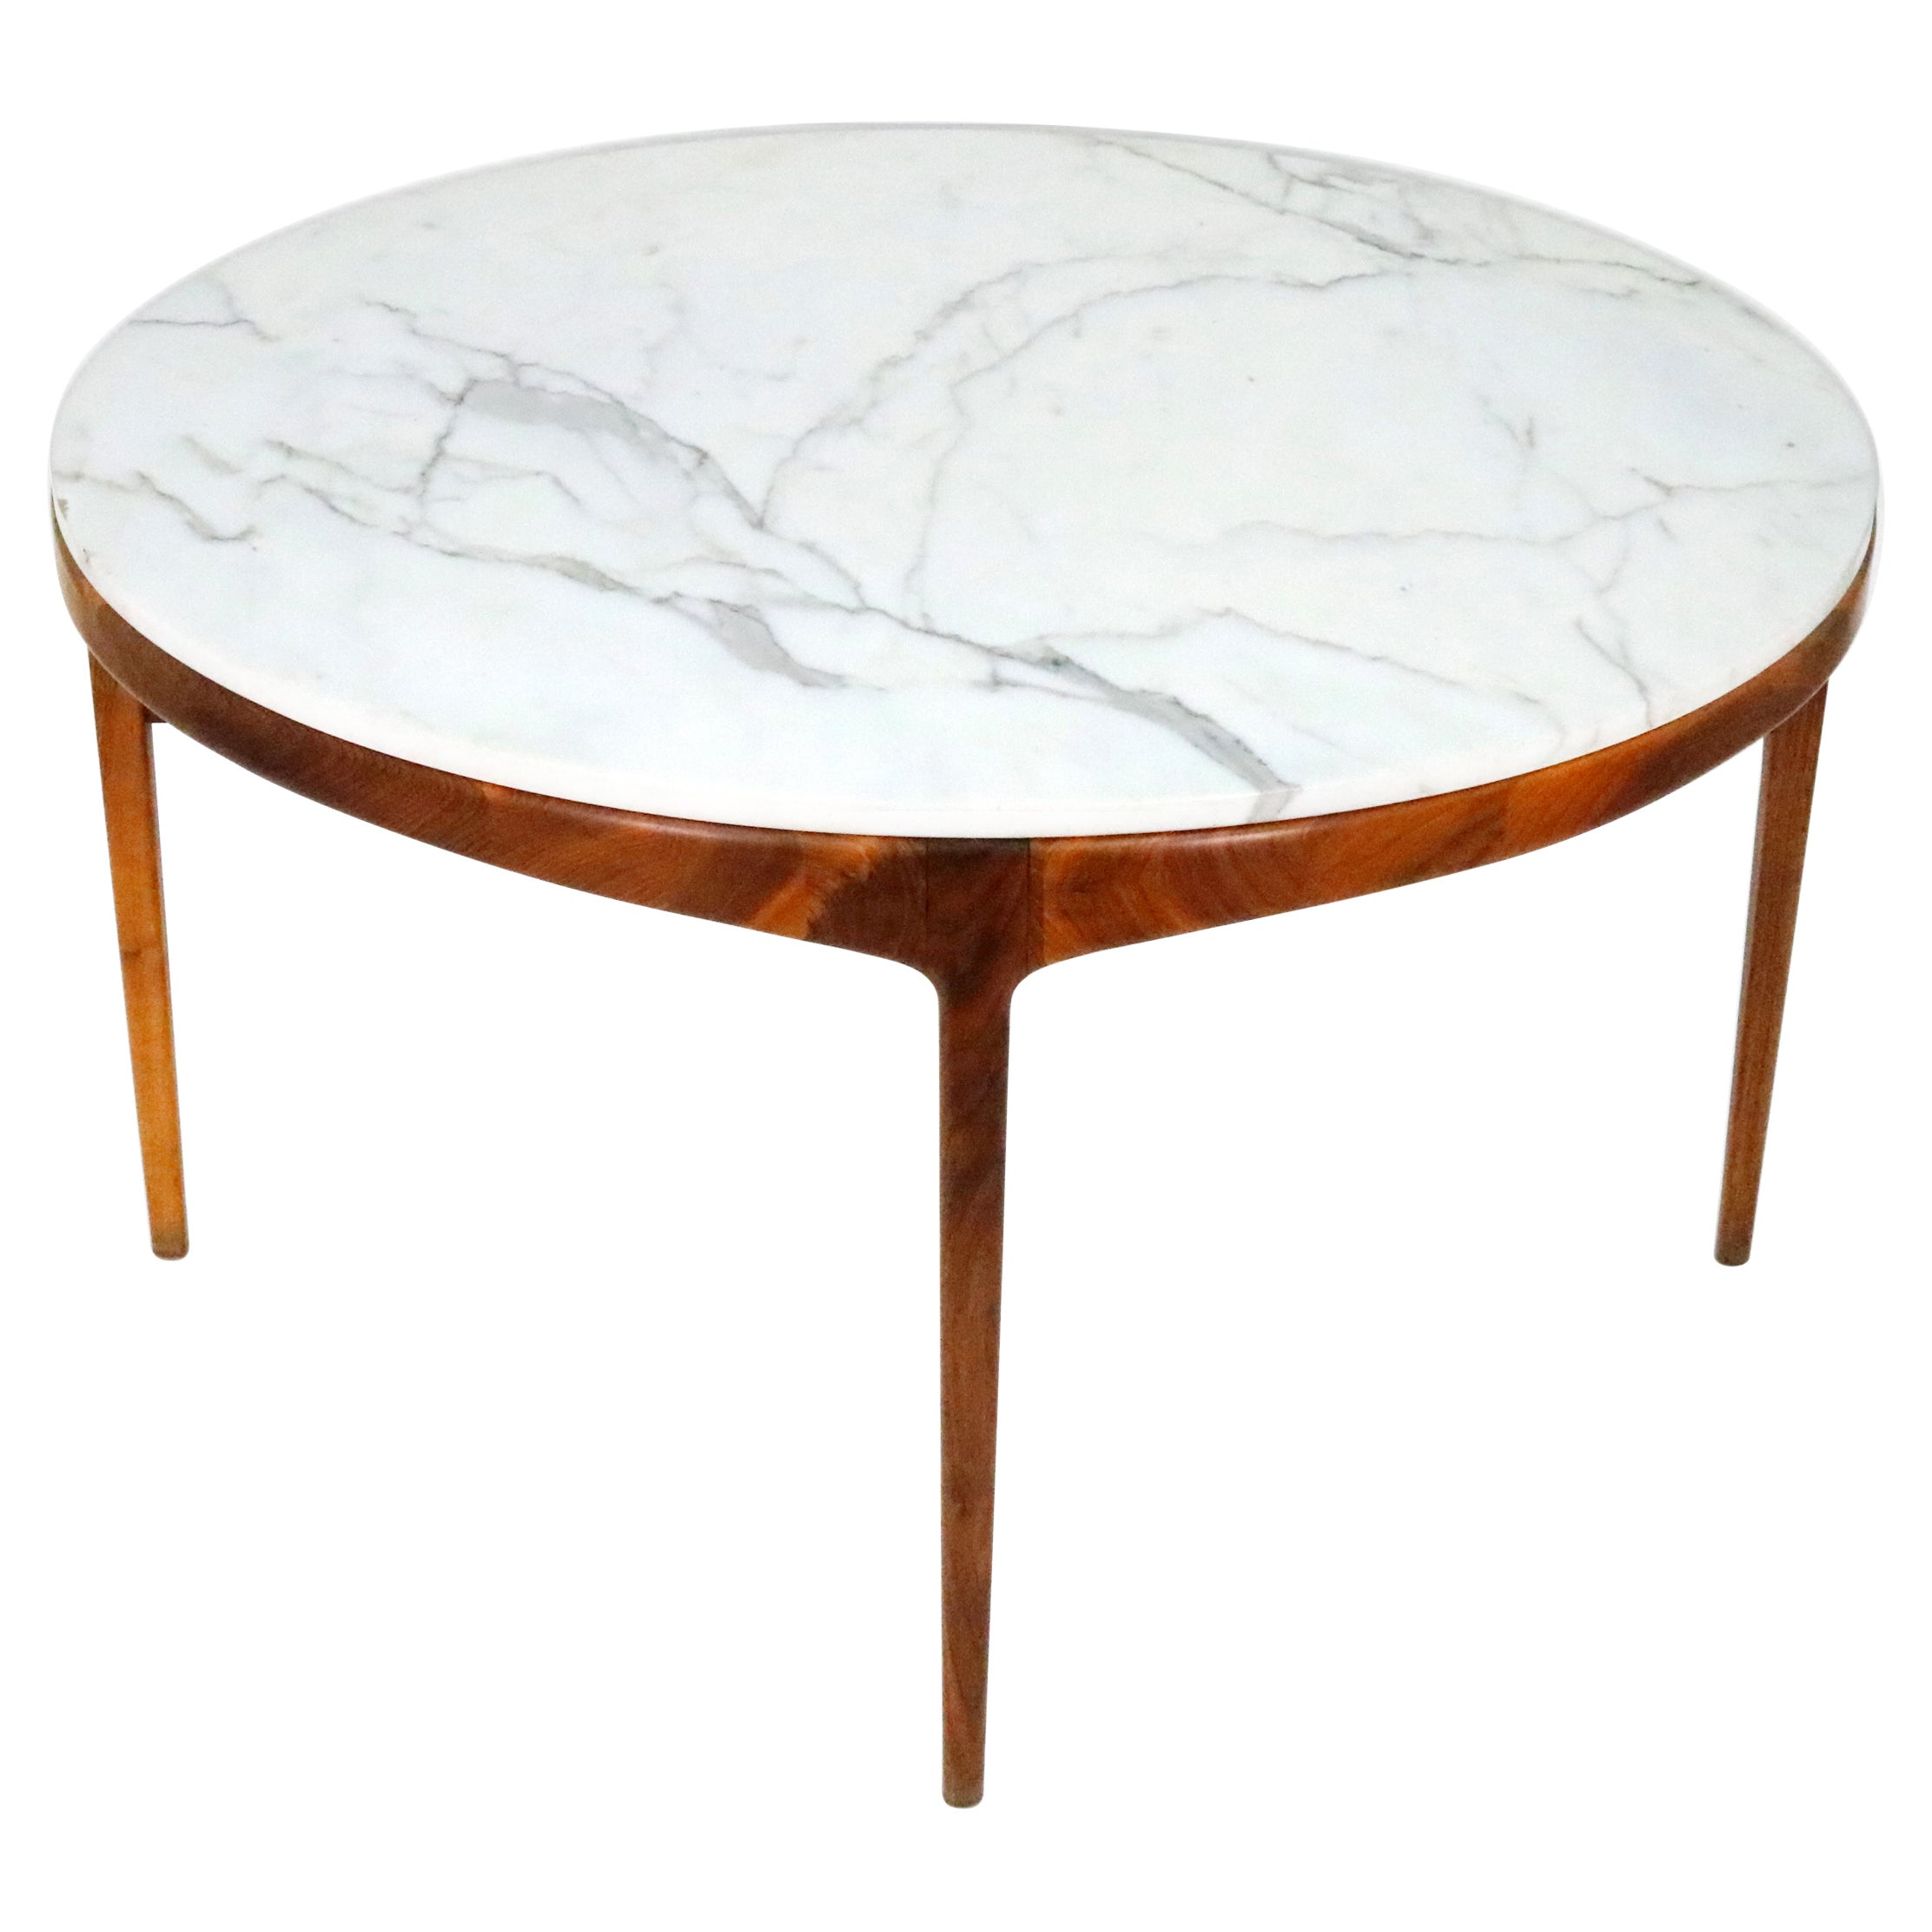 Marble Top Dining Table, Lane 'Rhythm' Series, 1960s